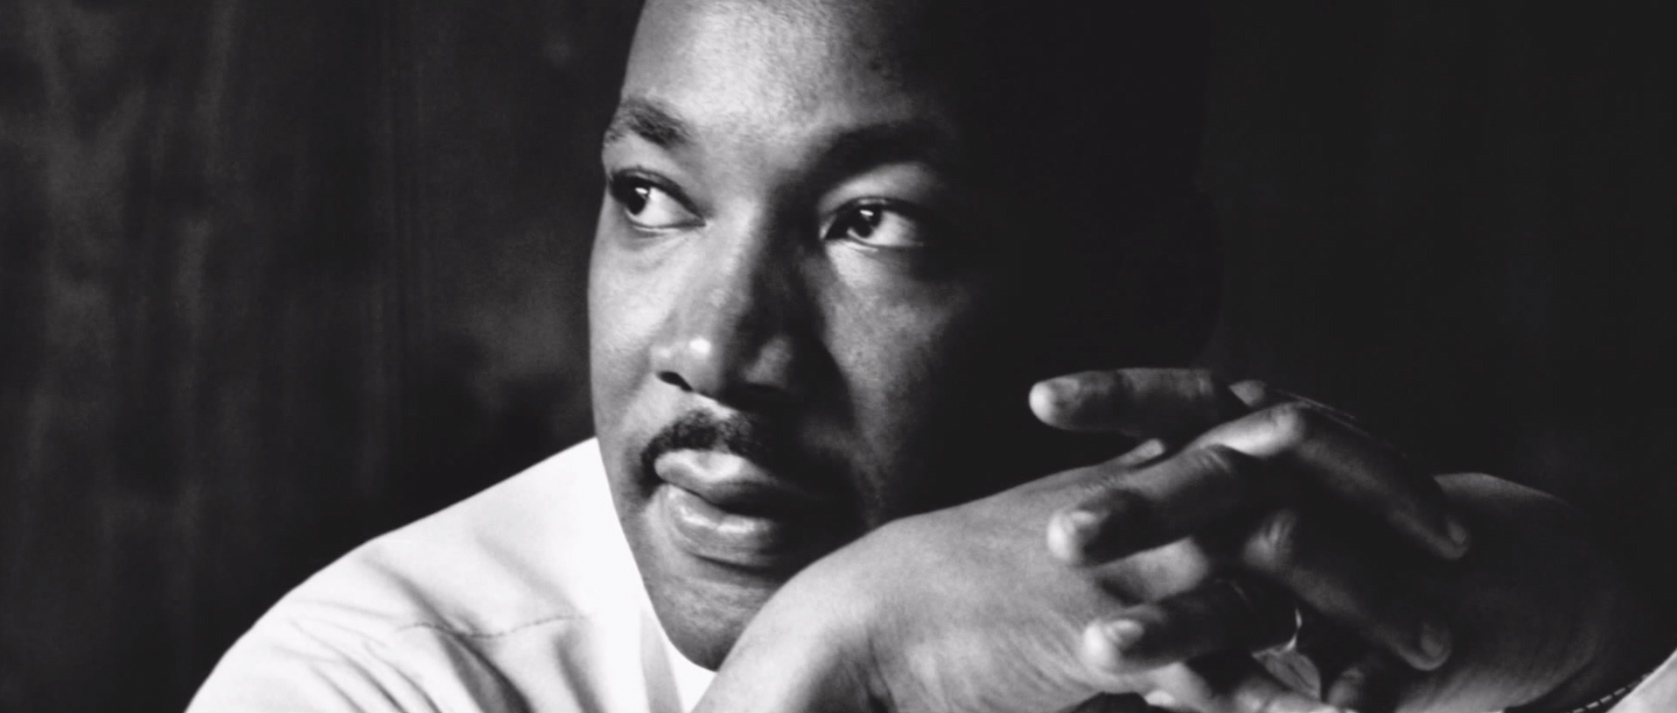 Arc Of Moral Universe >> Was Martin Luther King, Jr. Right About the Arc of the Moral Universe? » The Moral Arc